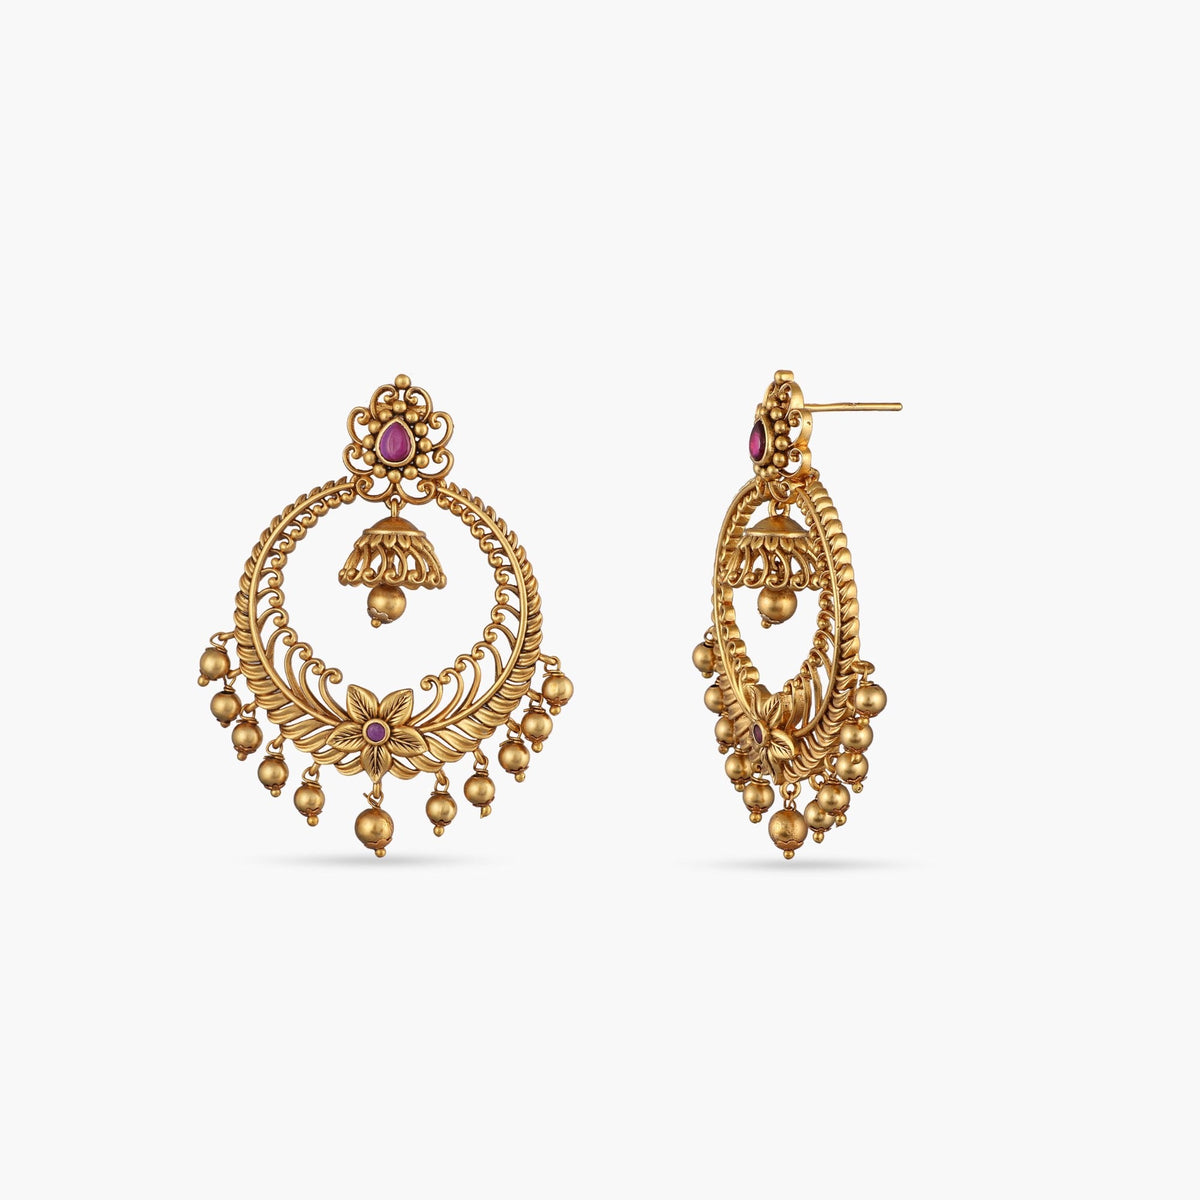 Kanan Antique Chandbali Earrings